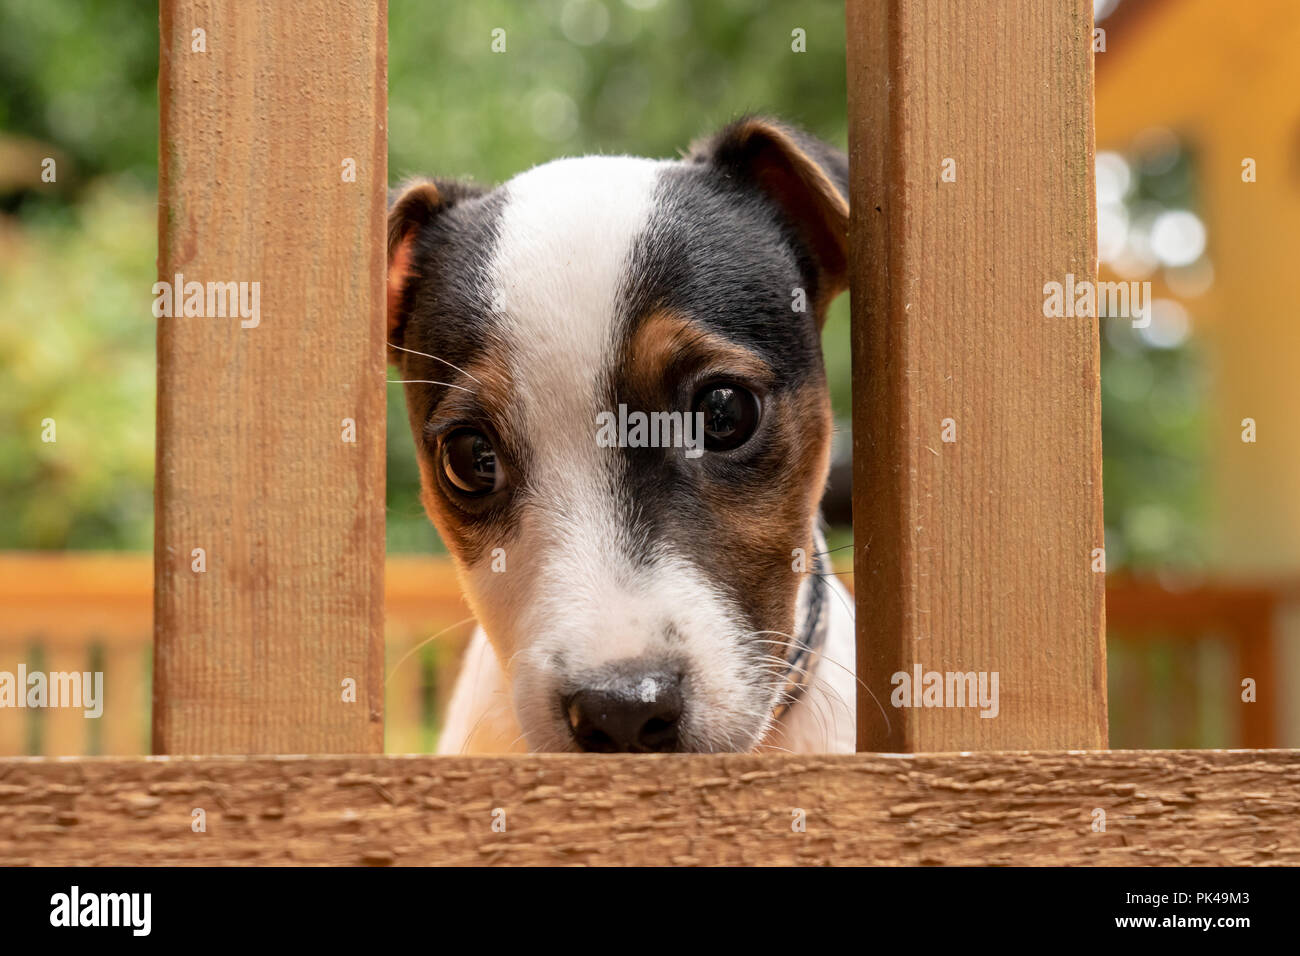 Two month old Jack Russell Terrier 'Harry' looking through the railing of a wooden deck. - Stock Image